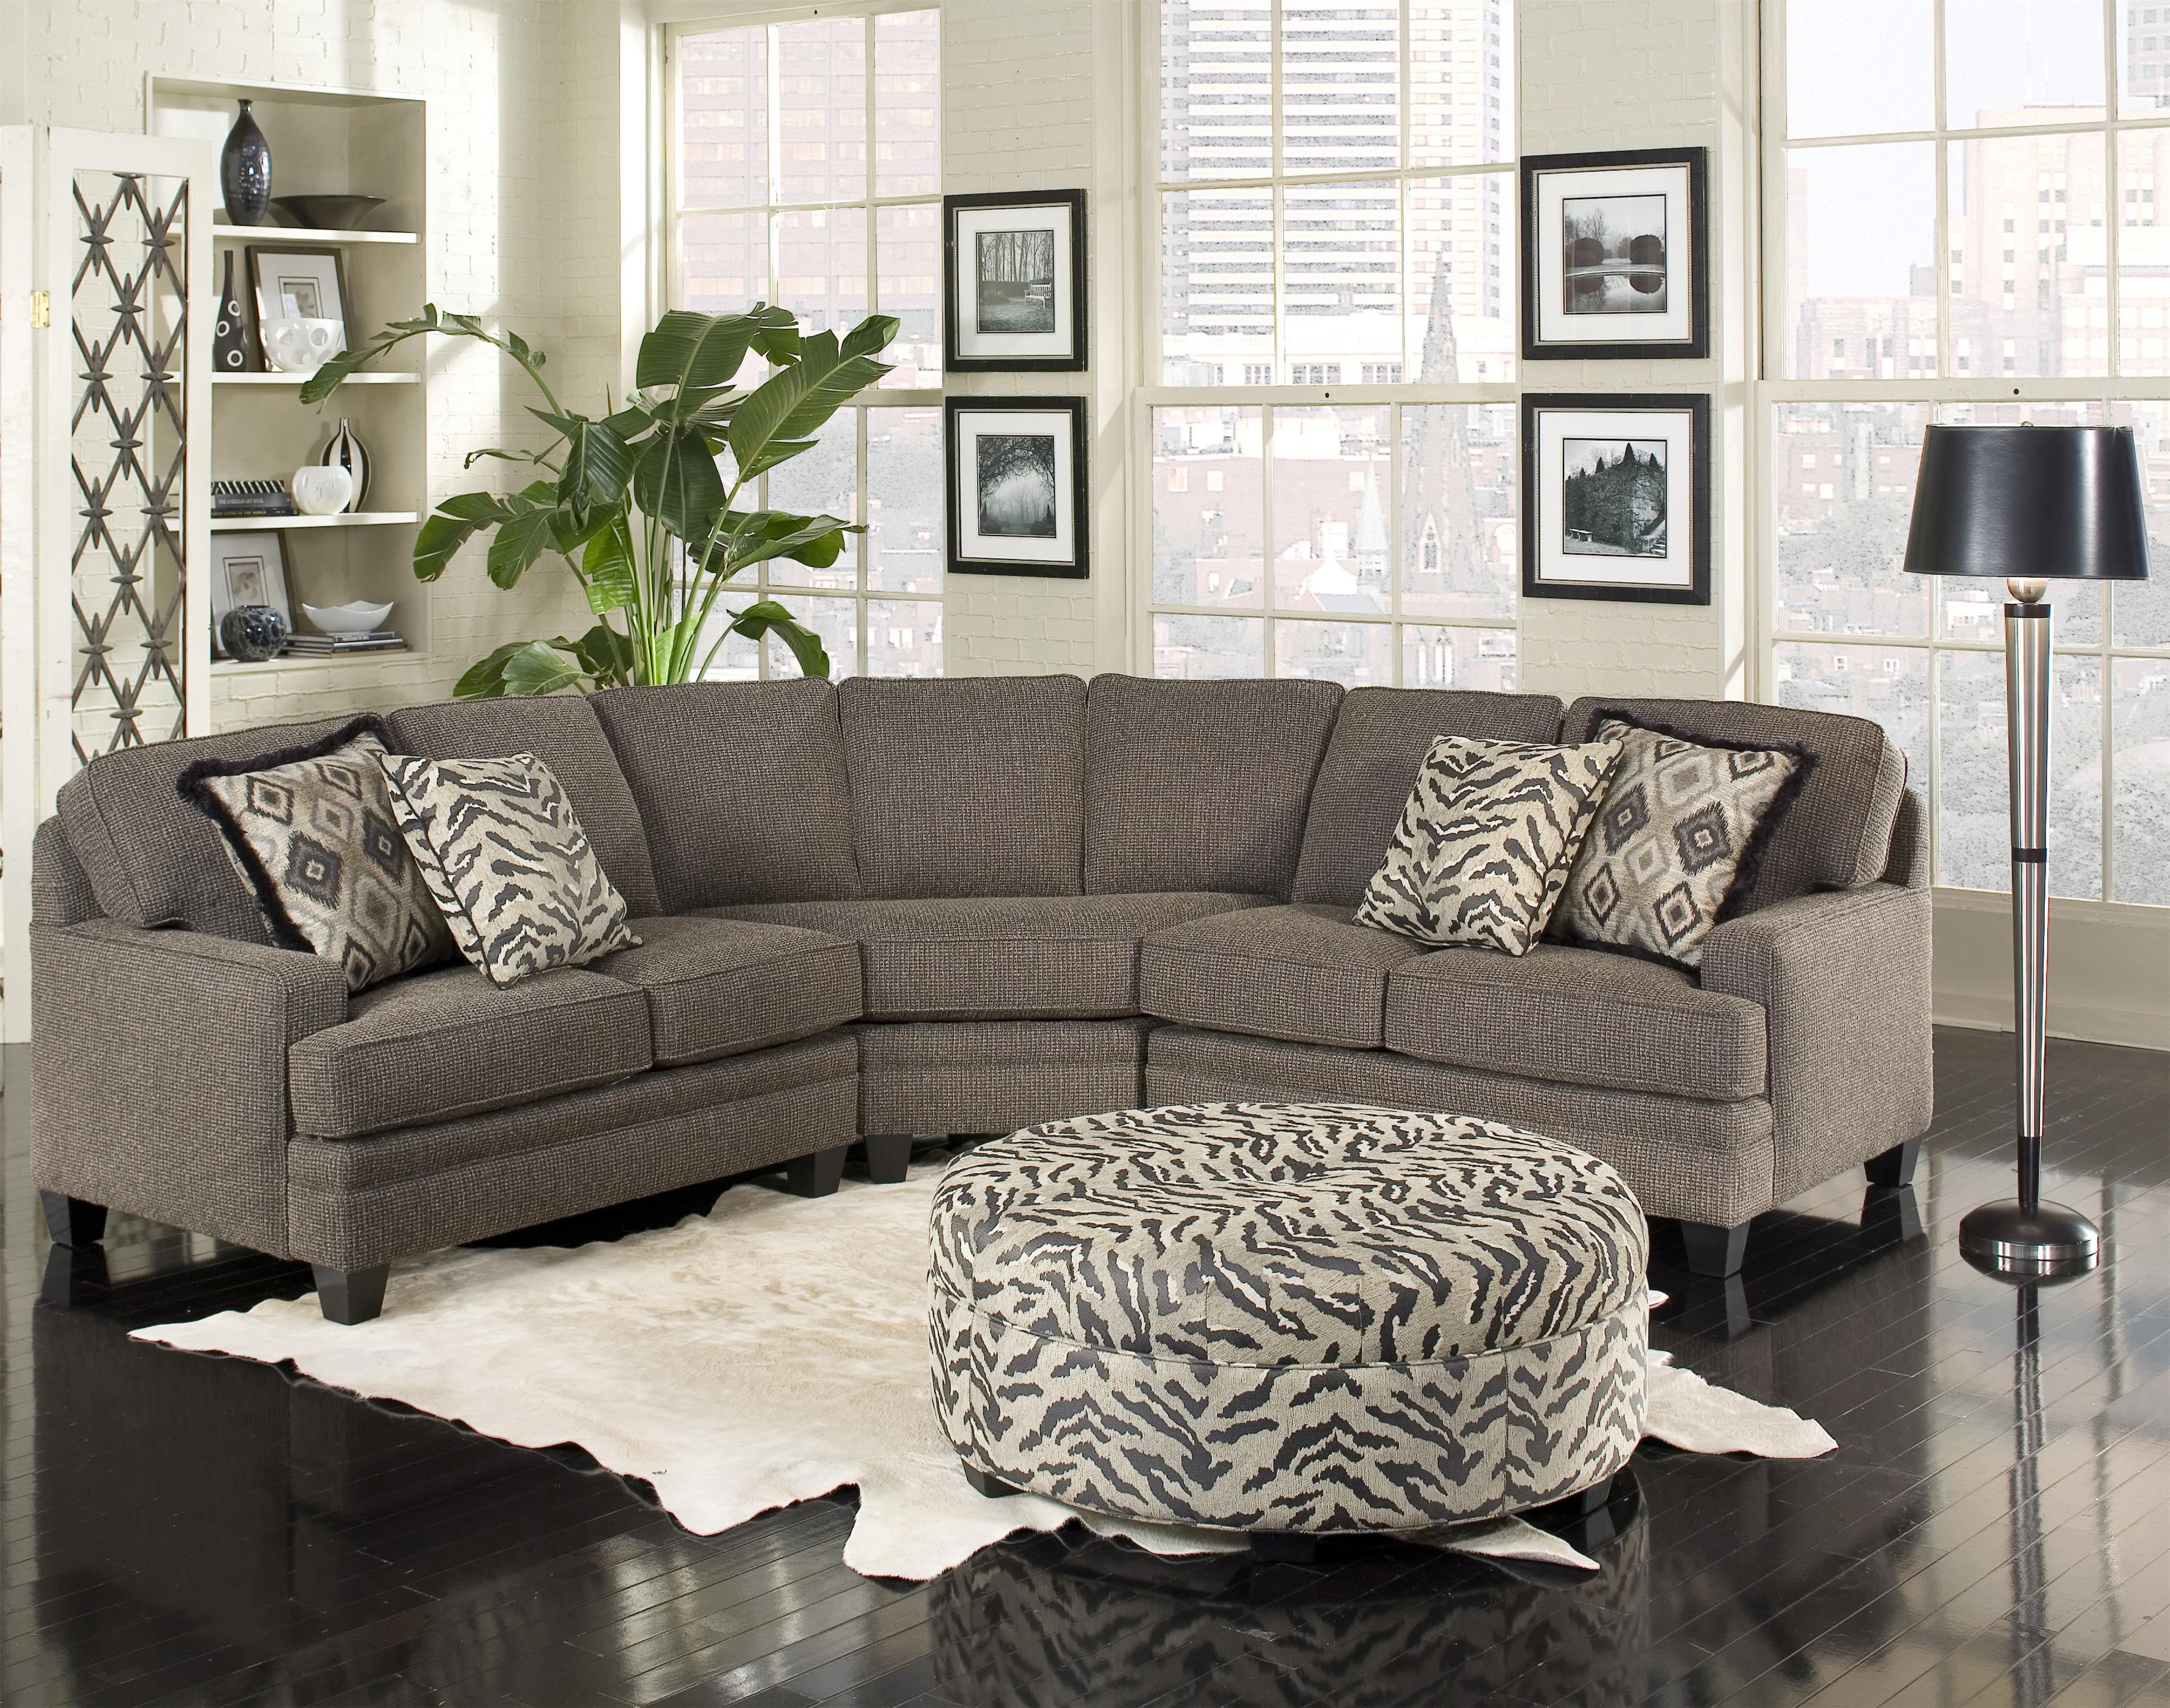 Build Your Own 5000 Series Customizable Sectional by Smith Brothers at Saugerties Furniture Mart